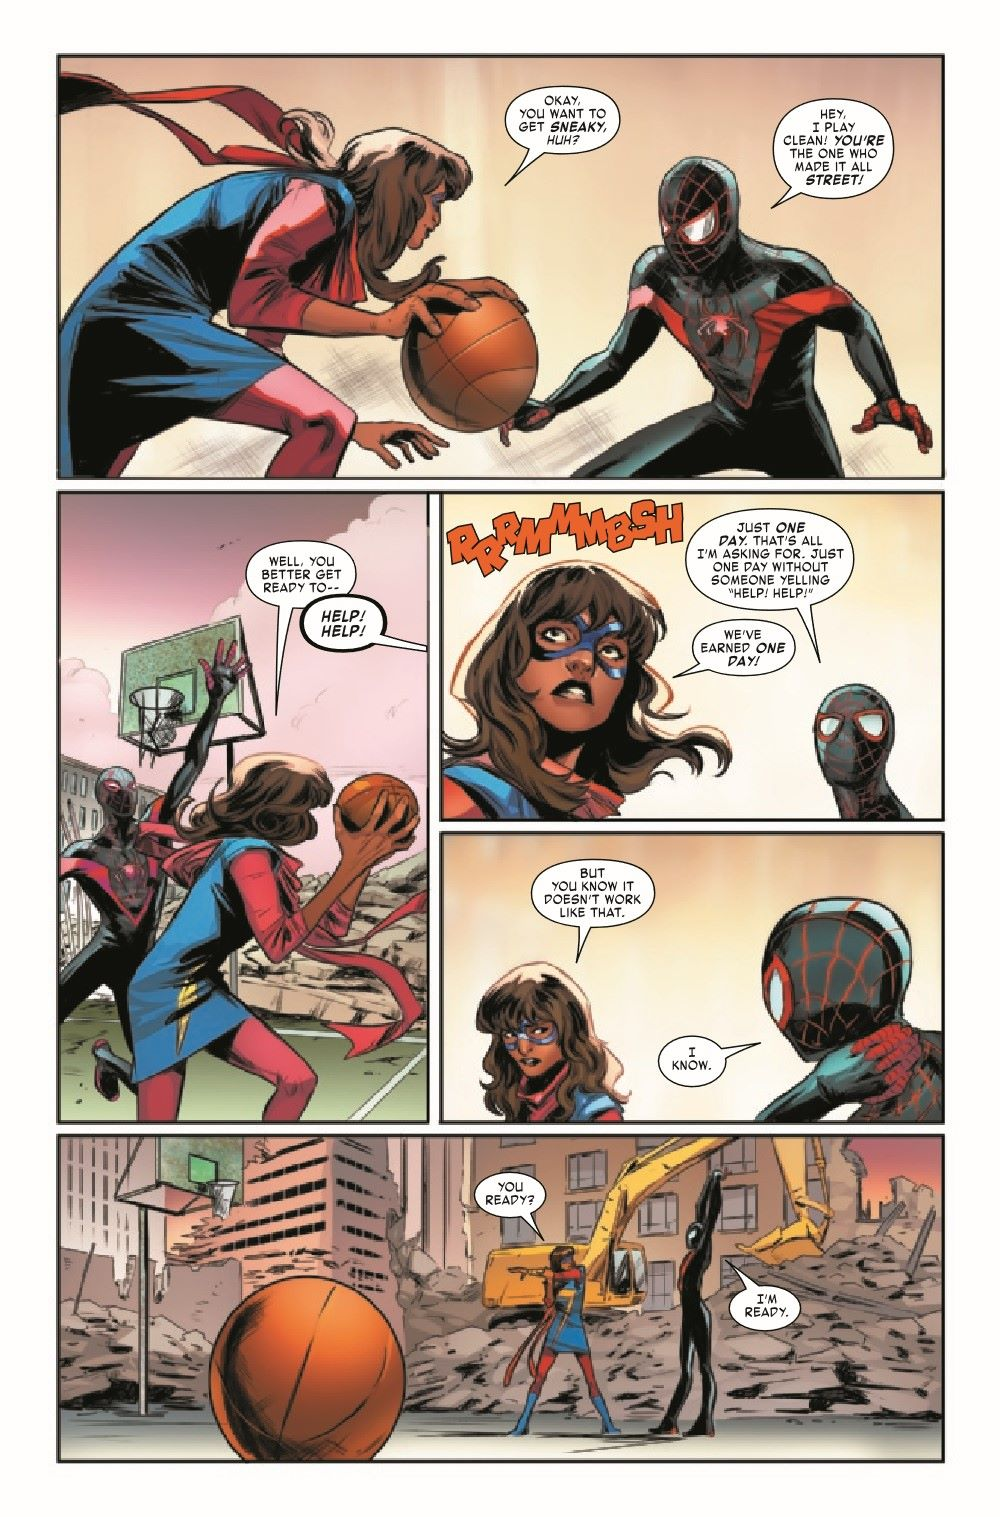 MMSM2018024_Preview-5 ComicList Previews: MILES MORALES SPIDER-MAN #24